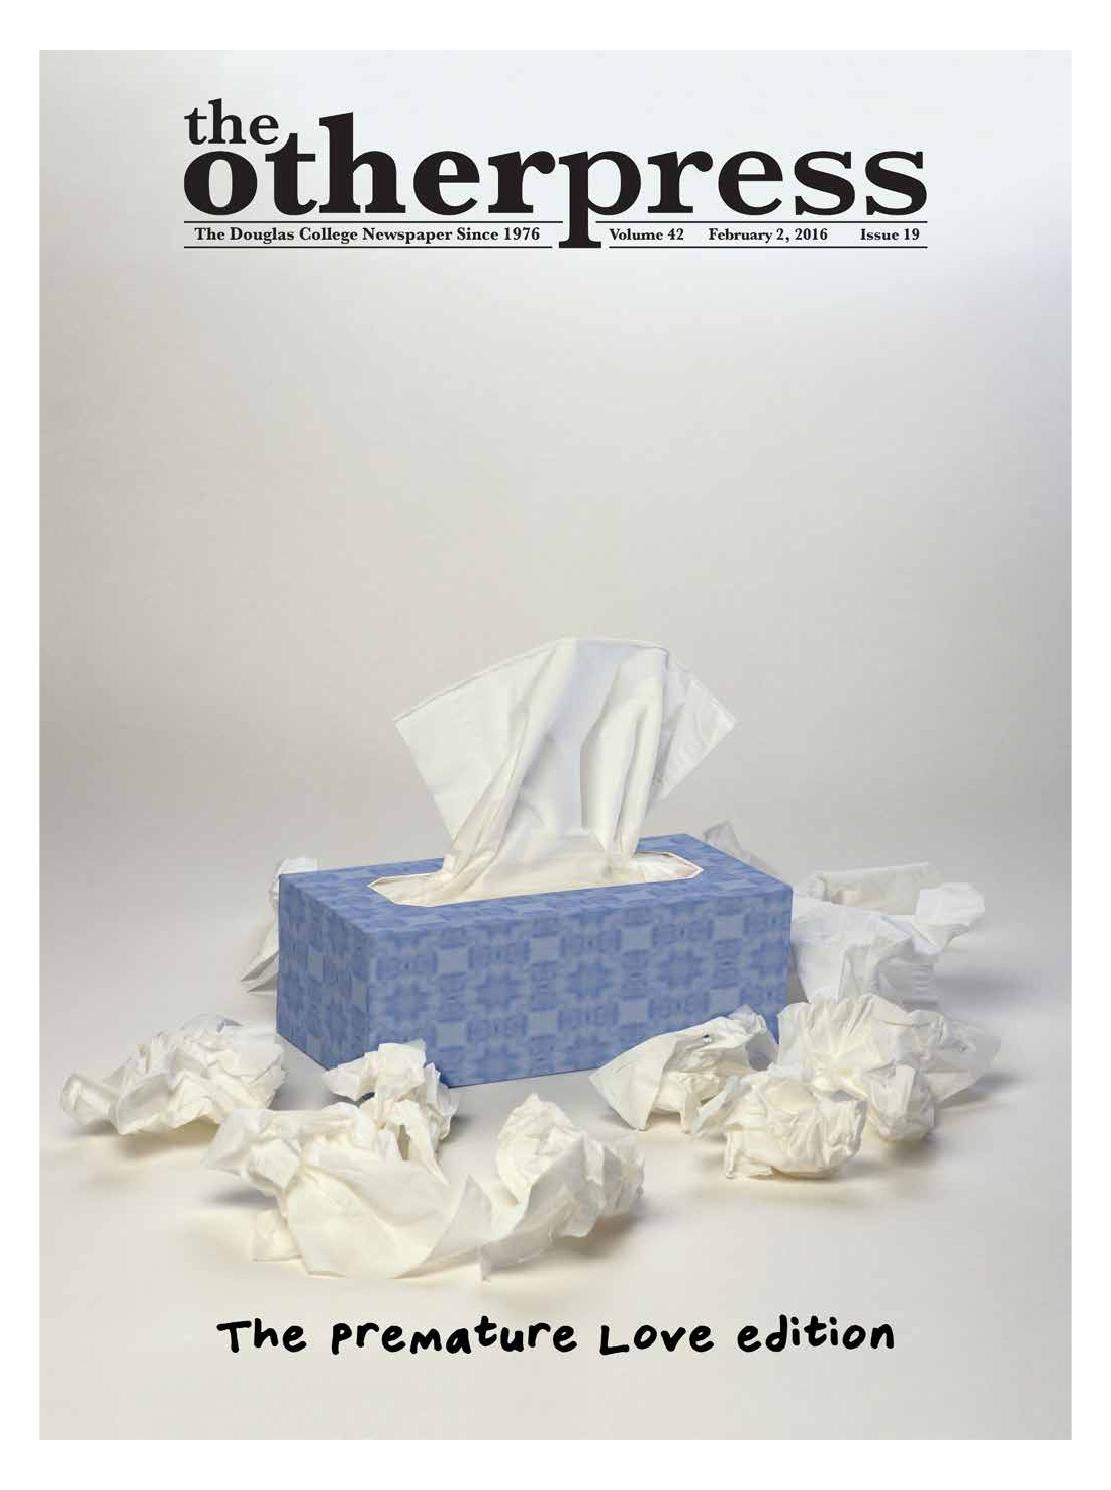 The Other Press - February 2